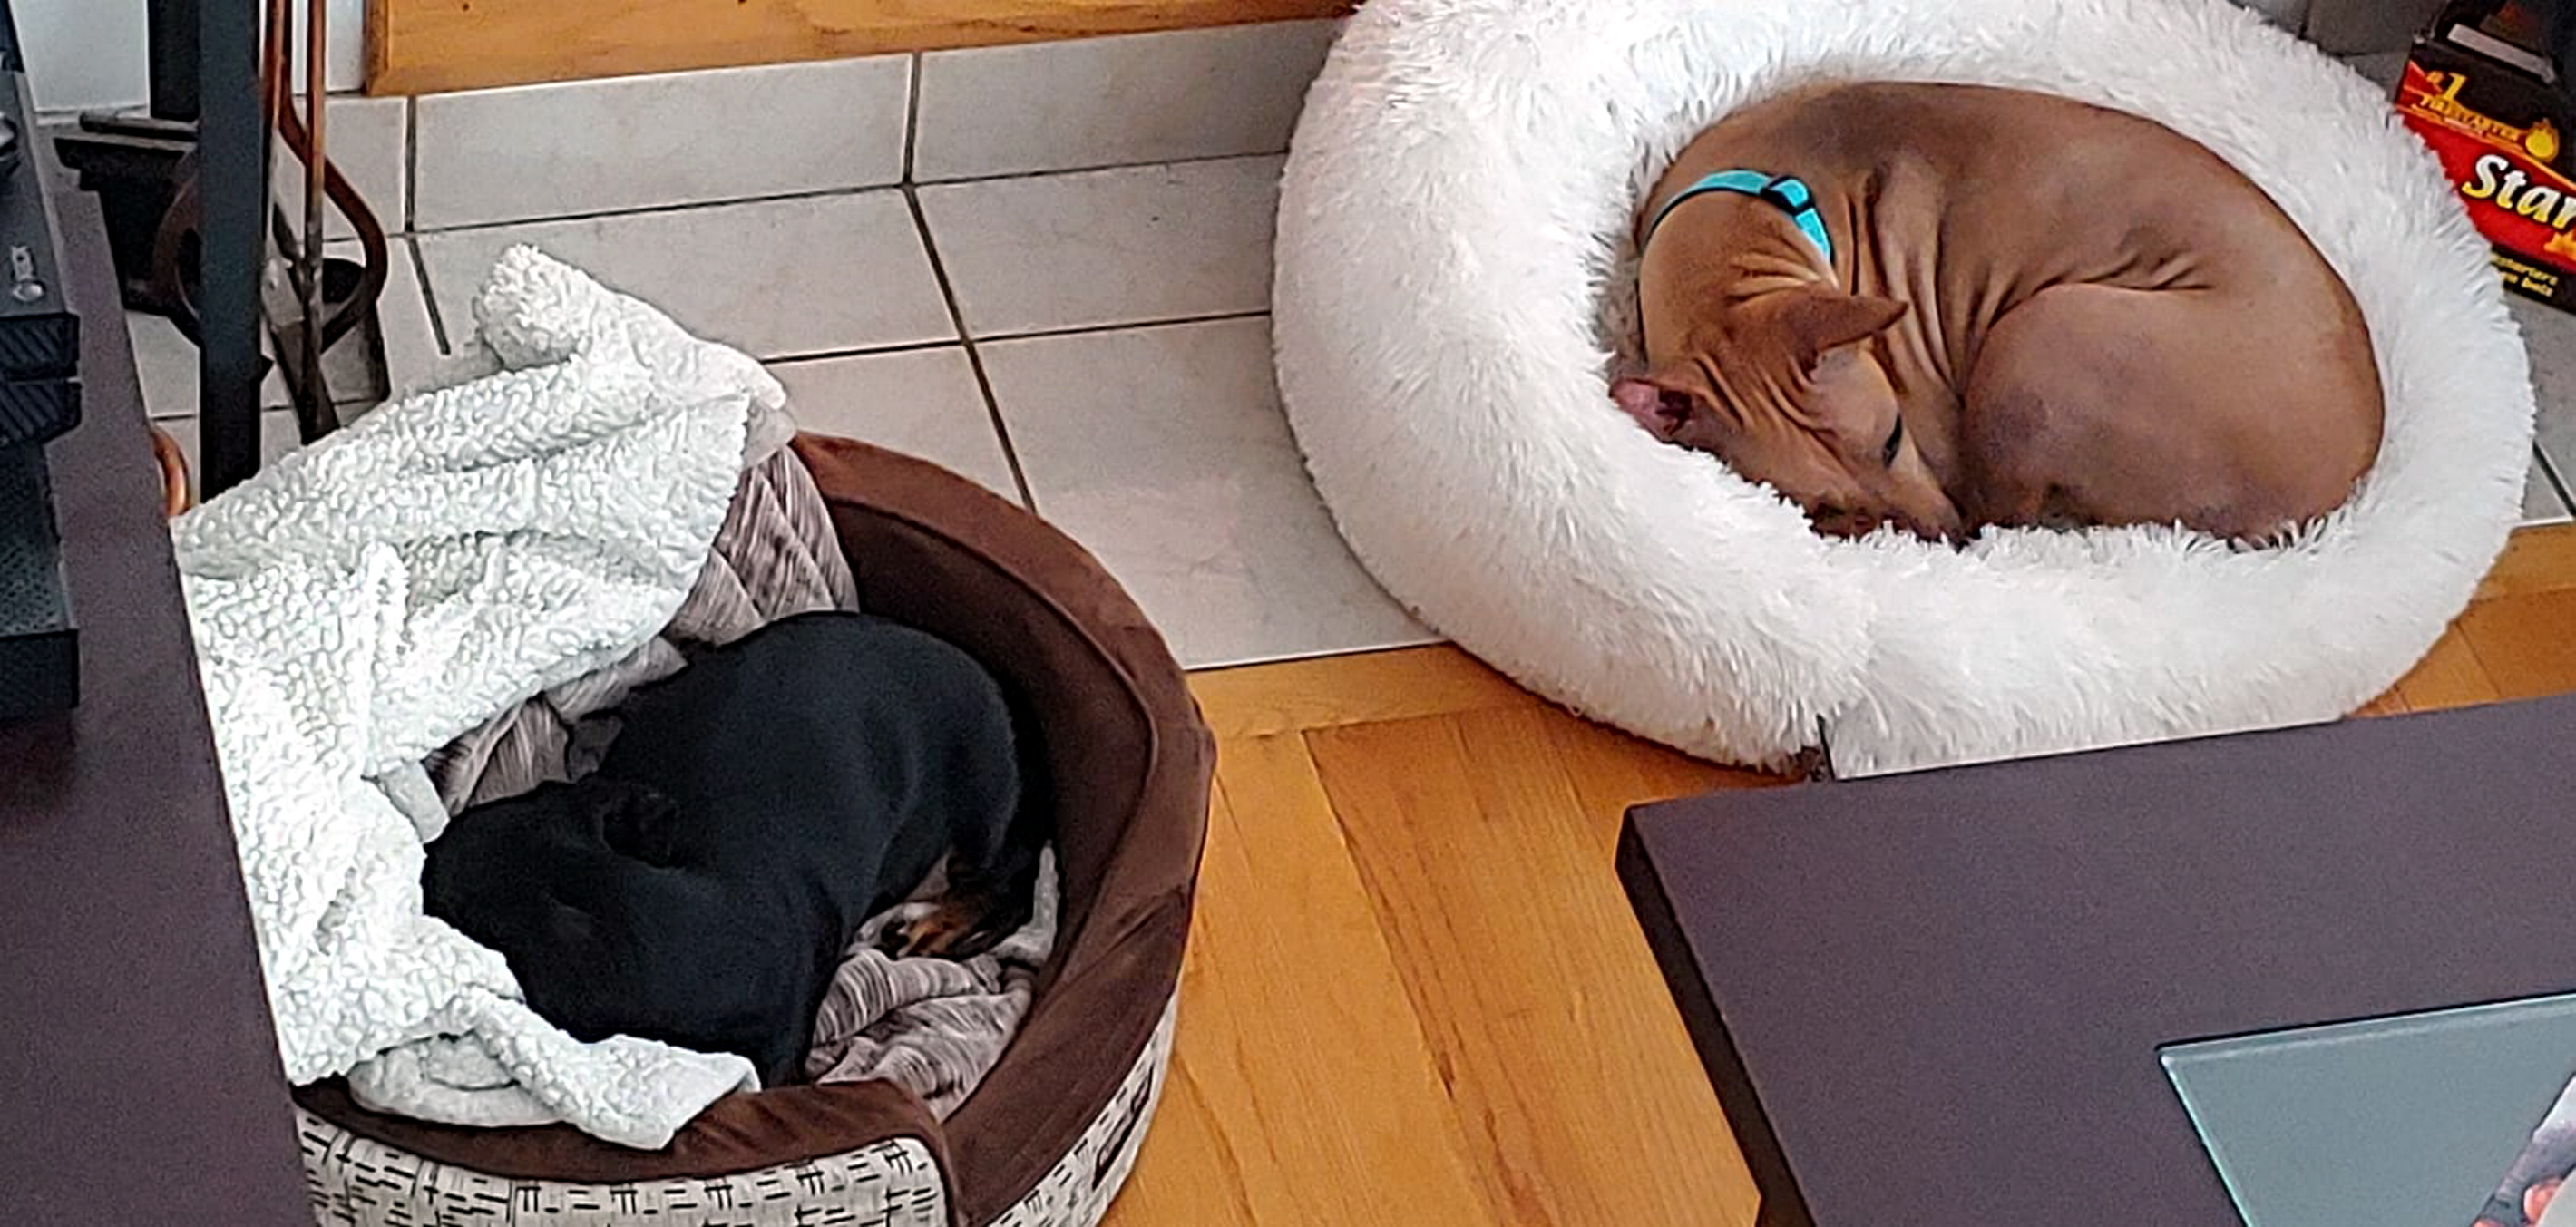 Former Kampar stray now renamed Sibelle is enjoying a comfortable bed in Quebec, Canada. She also has two paw siblings to play with. — Pix By  Iara Ramananstas